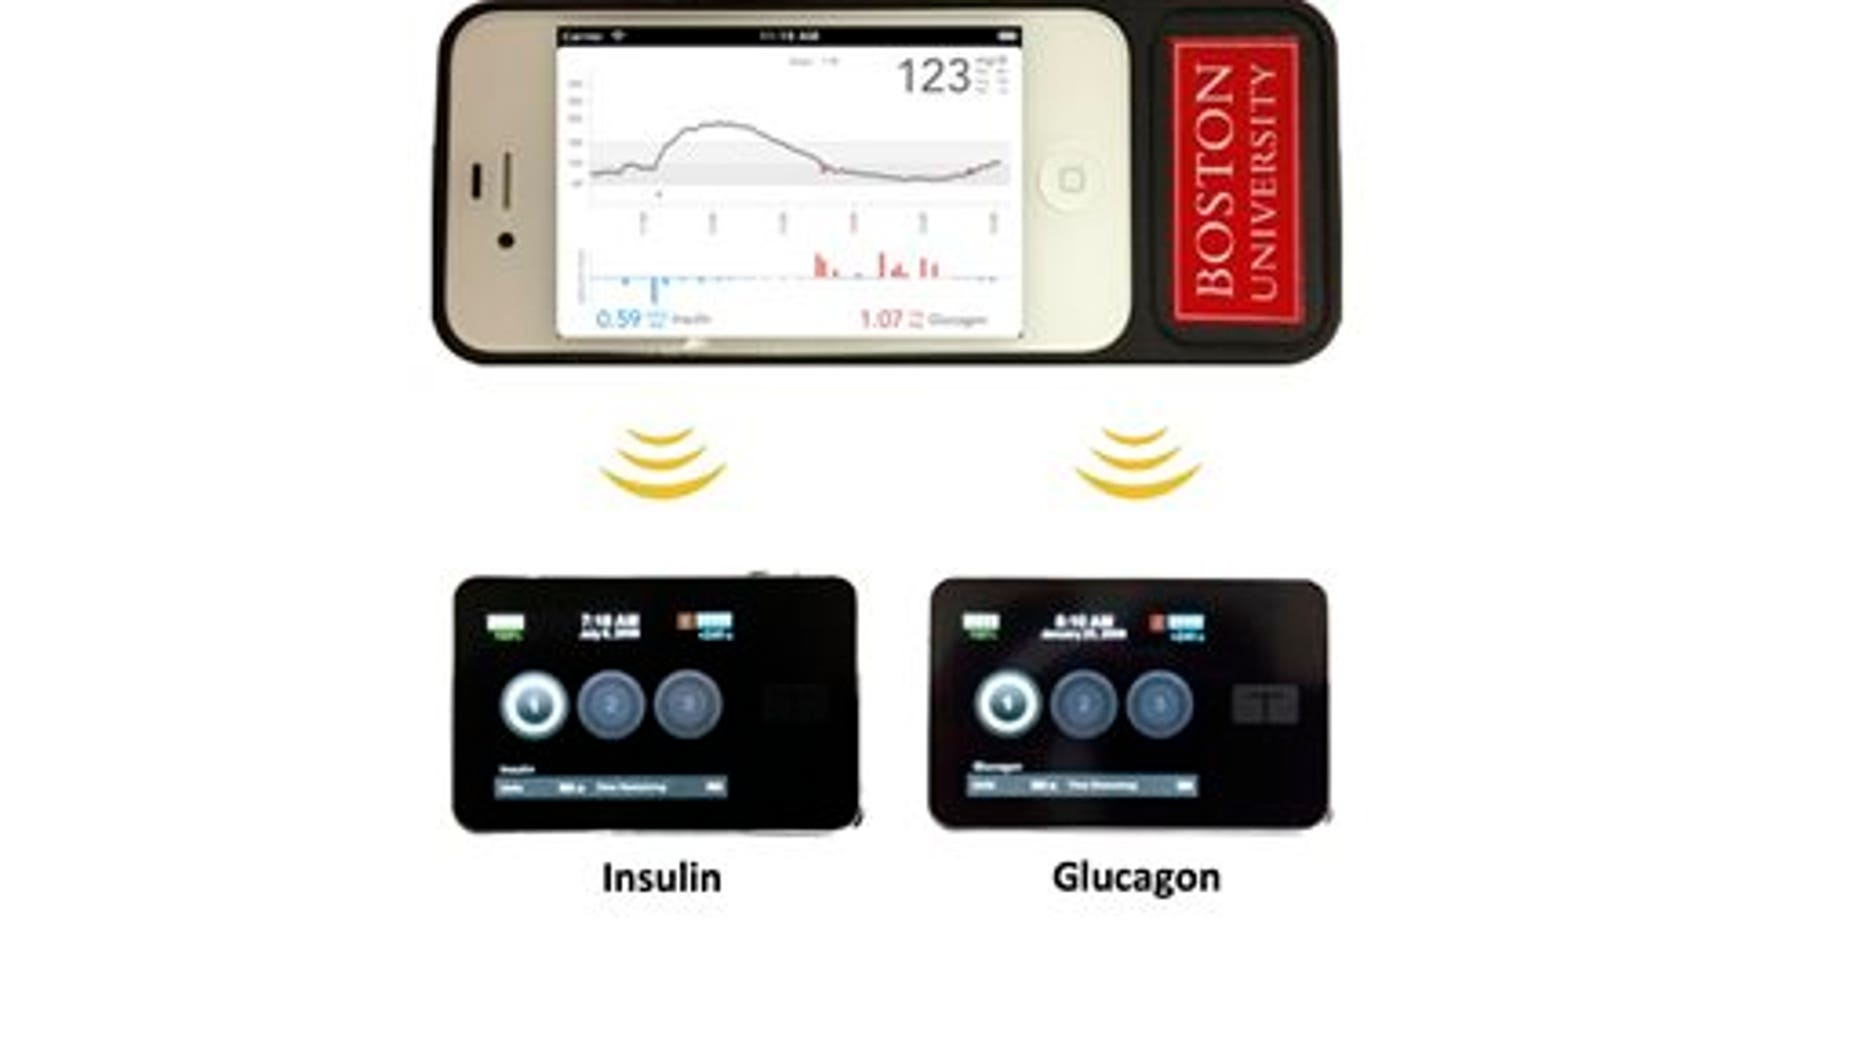 This undated product image provided Boston University Department of Biomedical Engineering shows the bionic pancreas developed by a Boston University/Massachusetts General Hospital research team. The bionic pancreas consists of a smartphone, top, hardwired to a continuous glucose monitor and two pumps, bottom, that pumps deliver doses of insulin or glucagon every five minutes. (AP Photo/ Boston University Department of Biomedical Engineering)